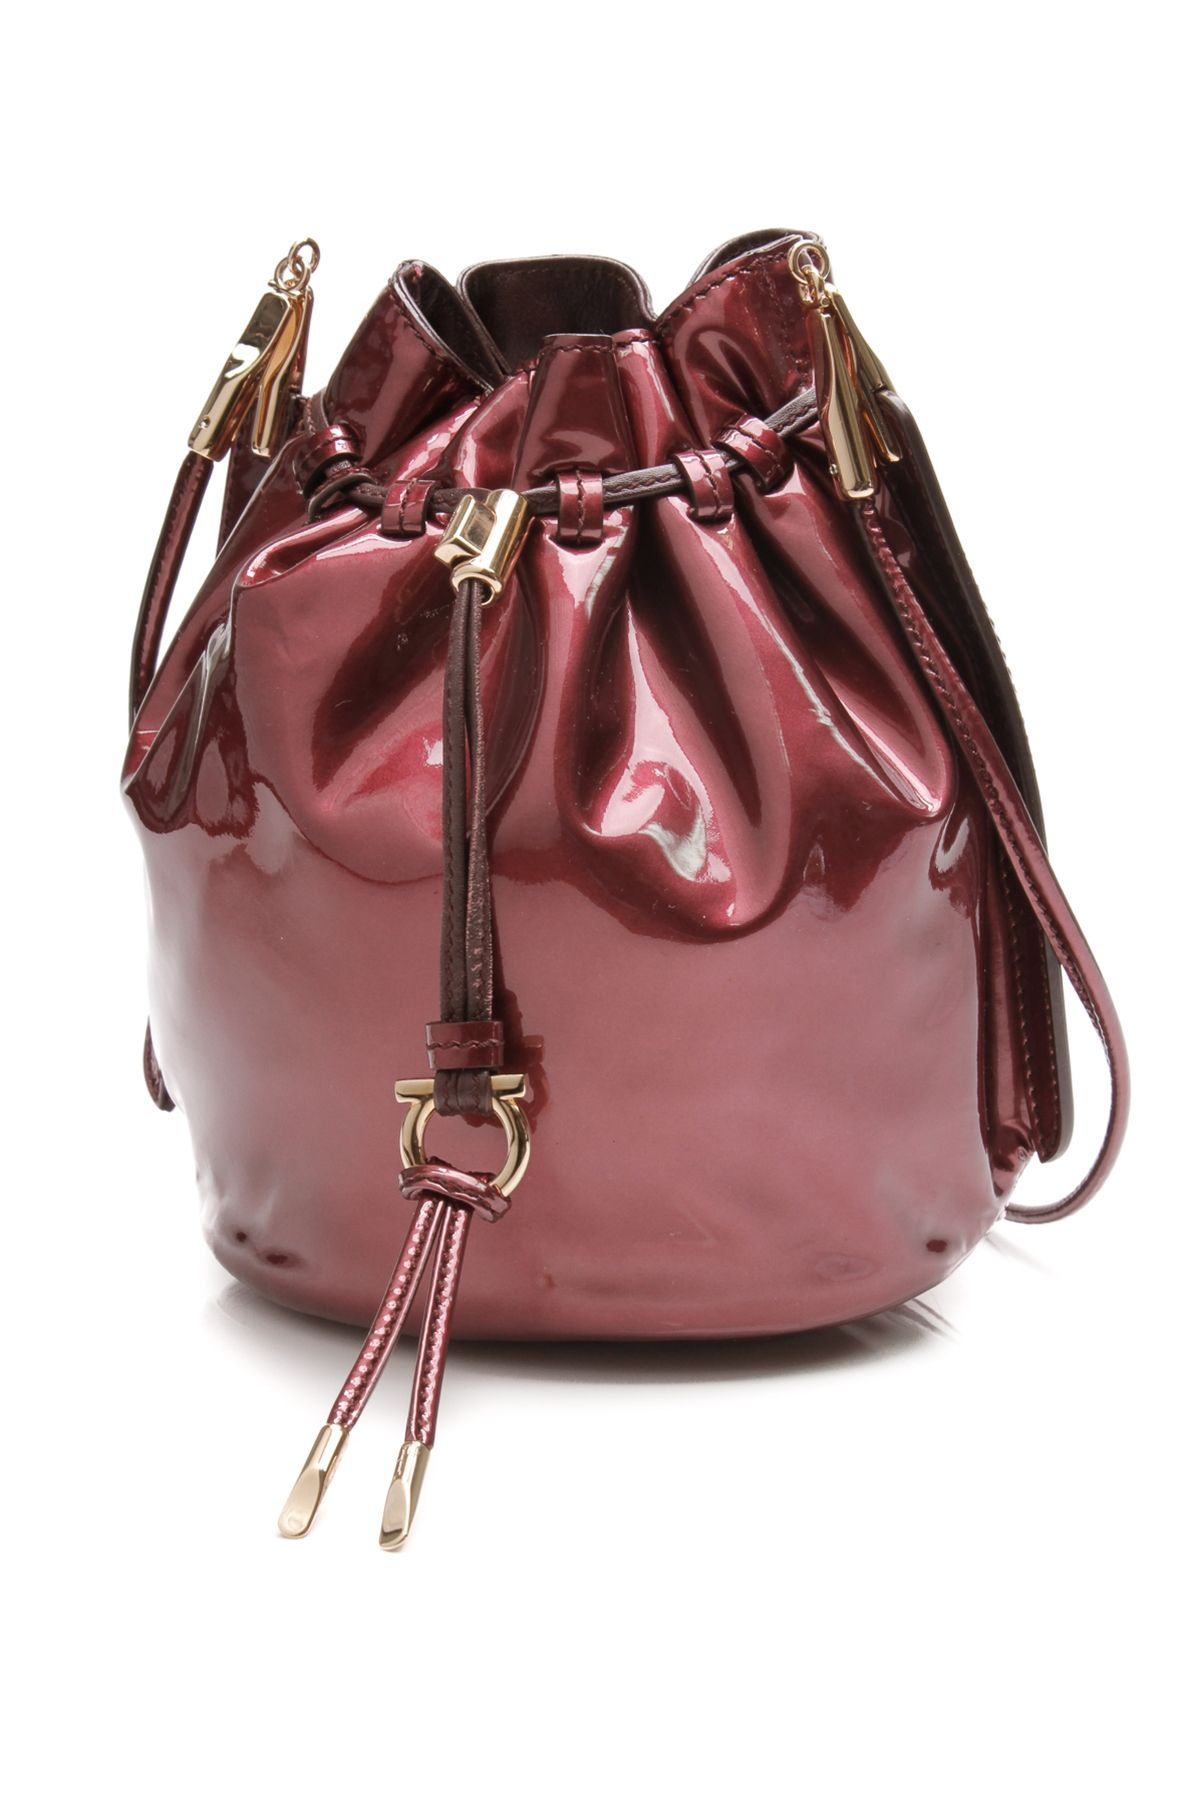 Authentic Pre Owned Used Designer Bags Page 7